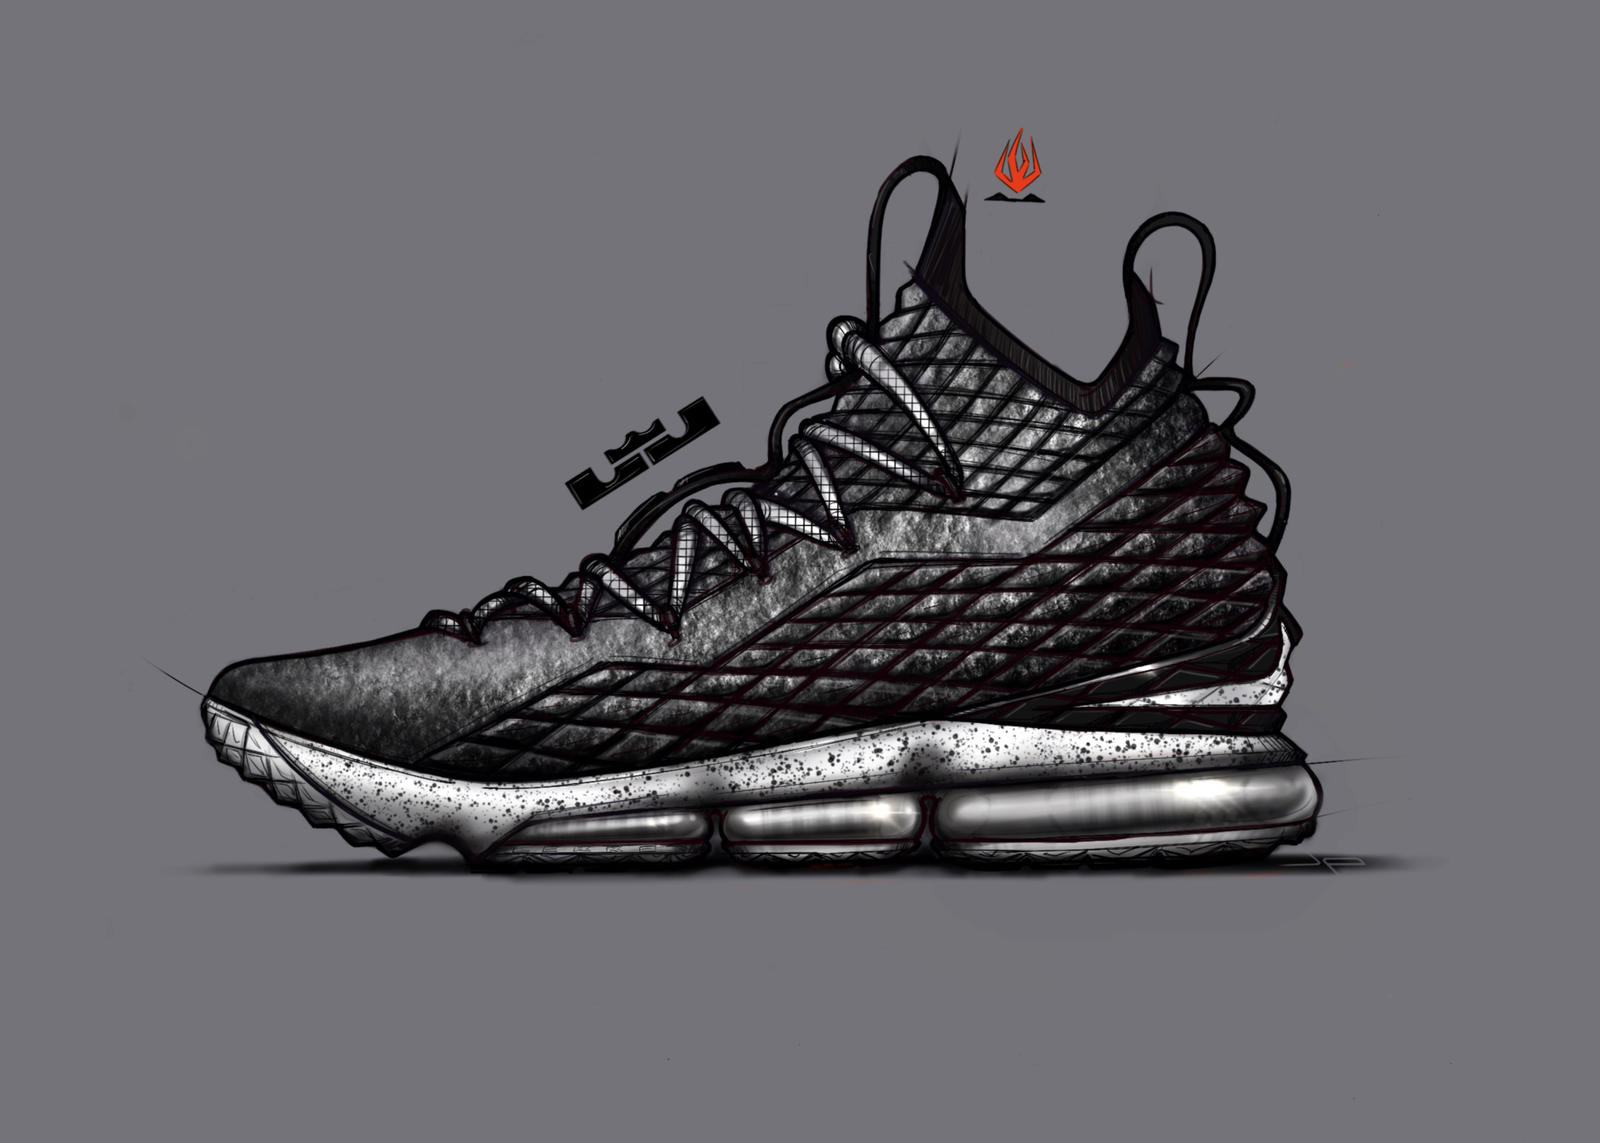 The LEBRON 15 ASHES